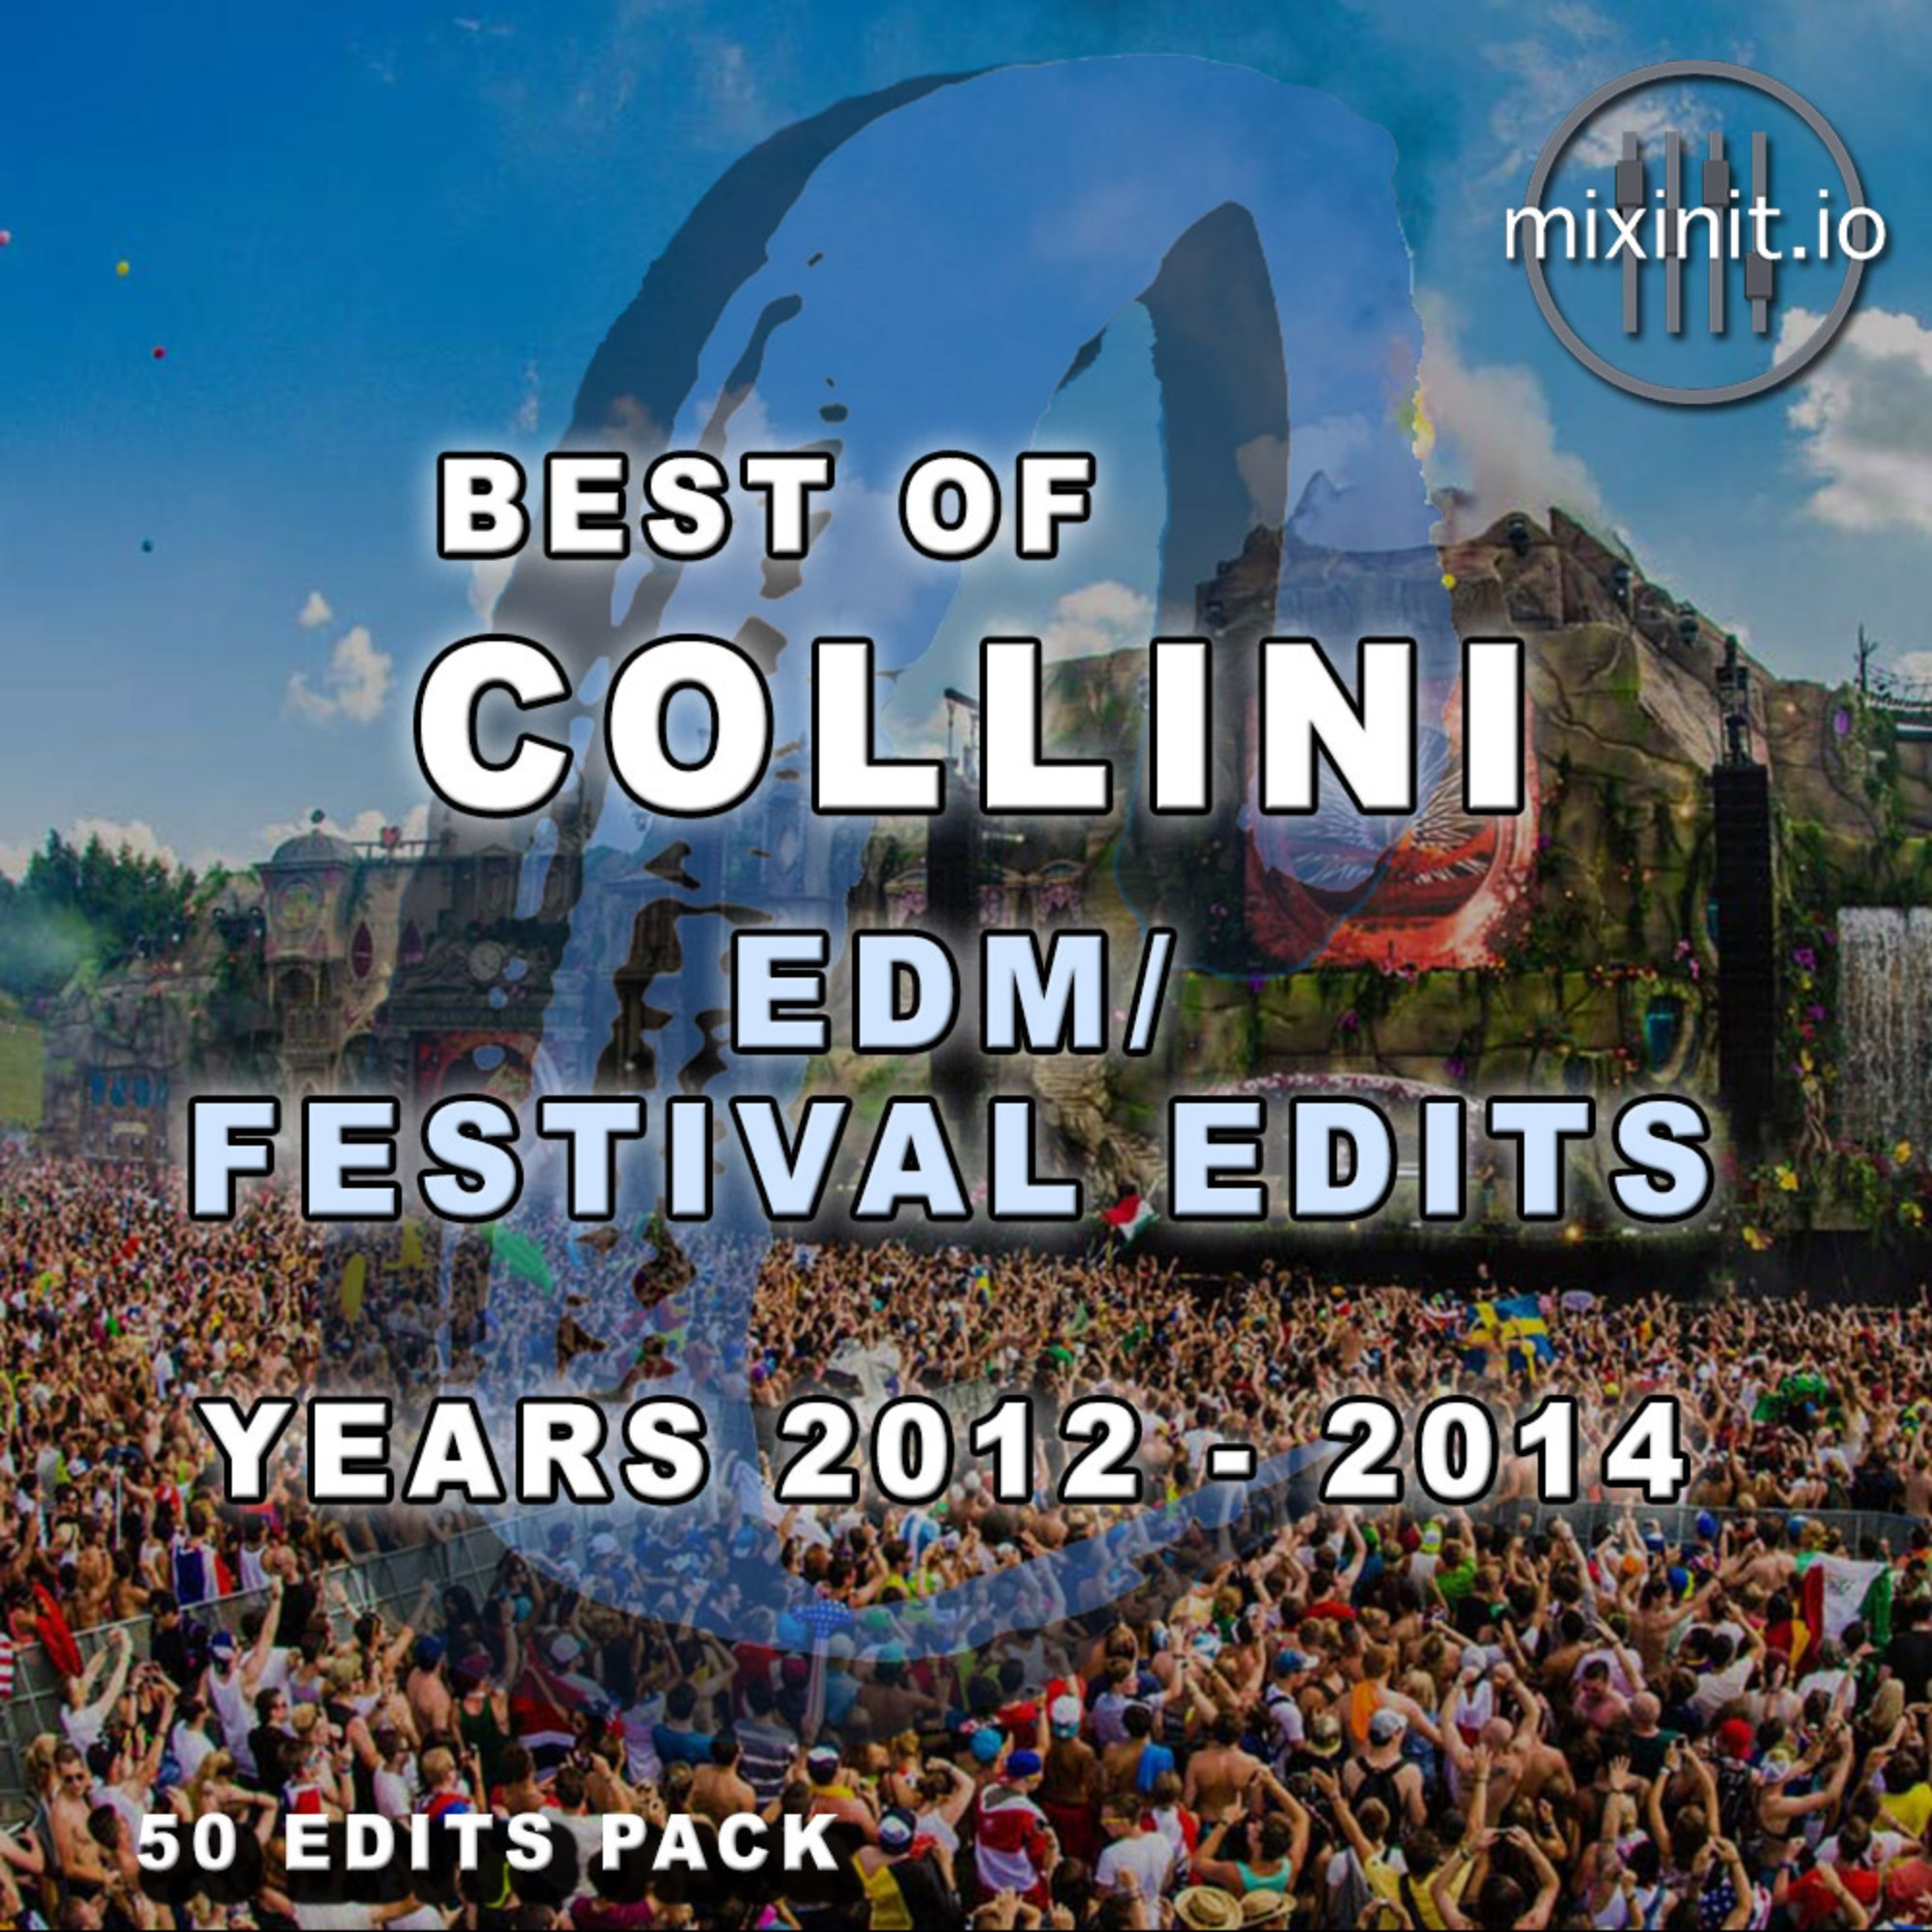 Collini - Best Of EDM Festival Edits (2012-2014)